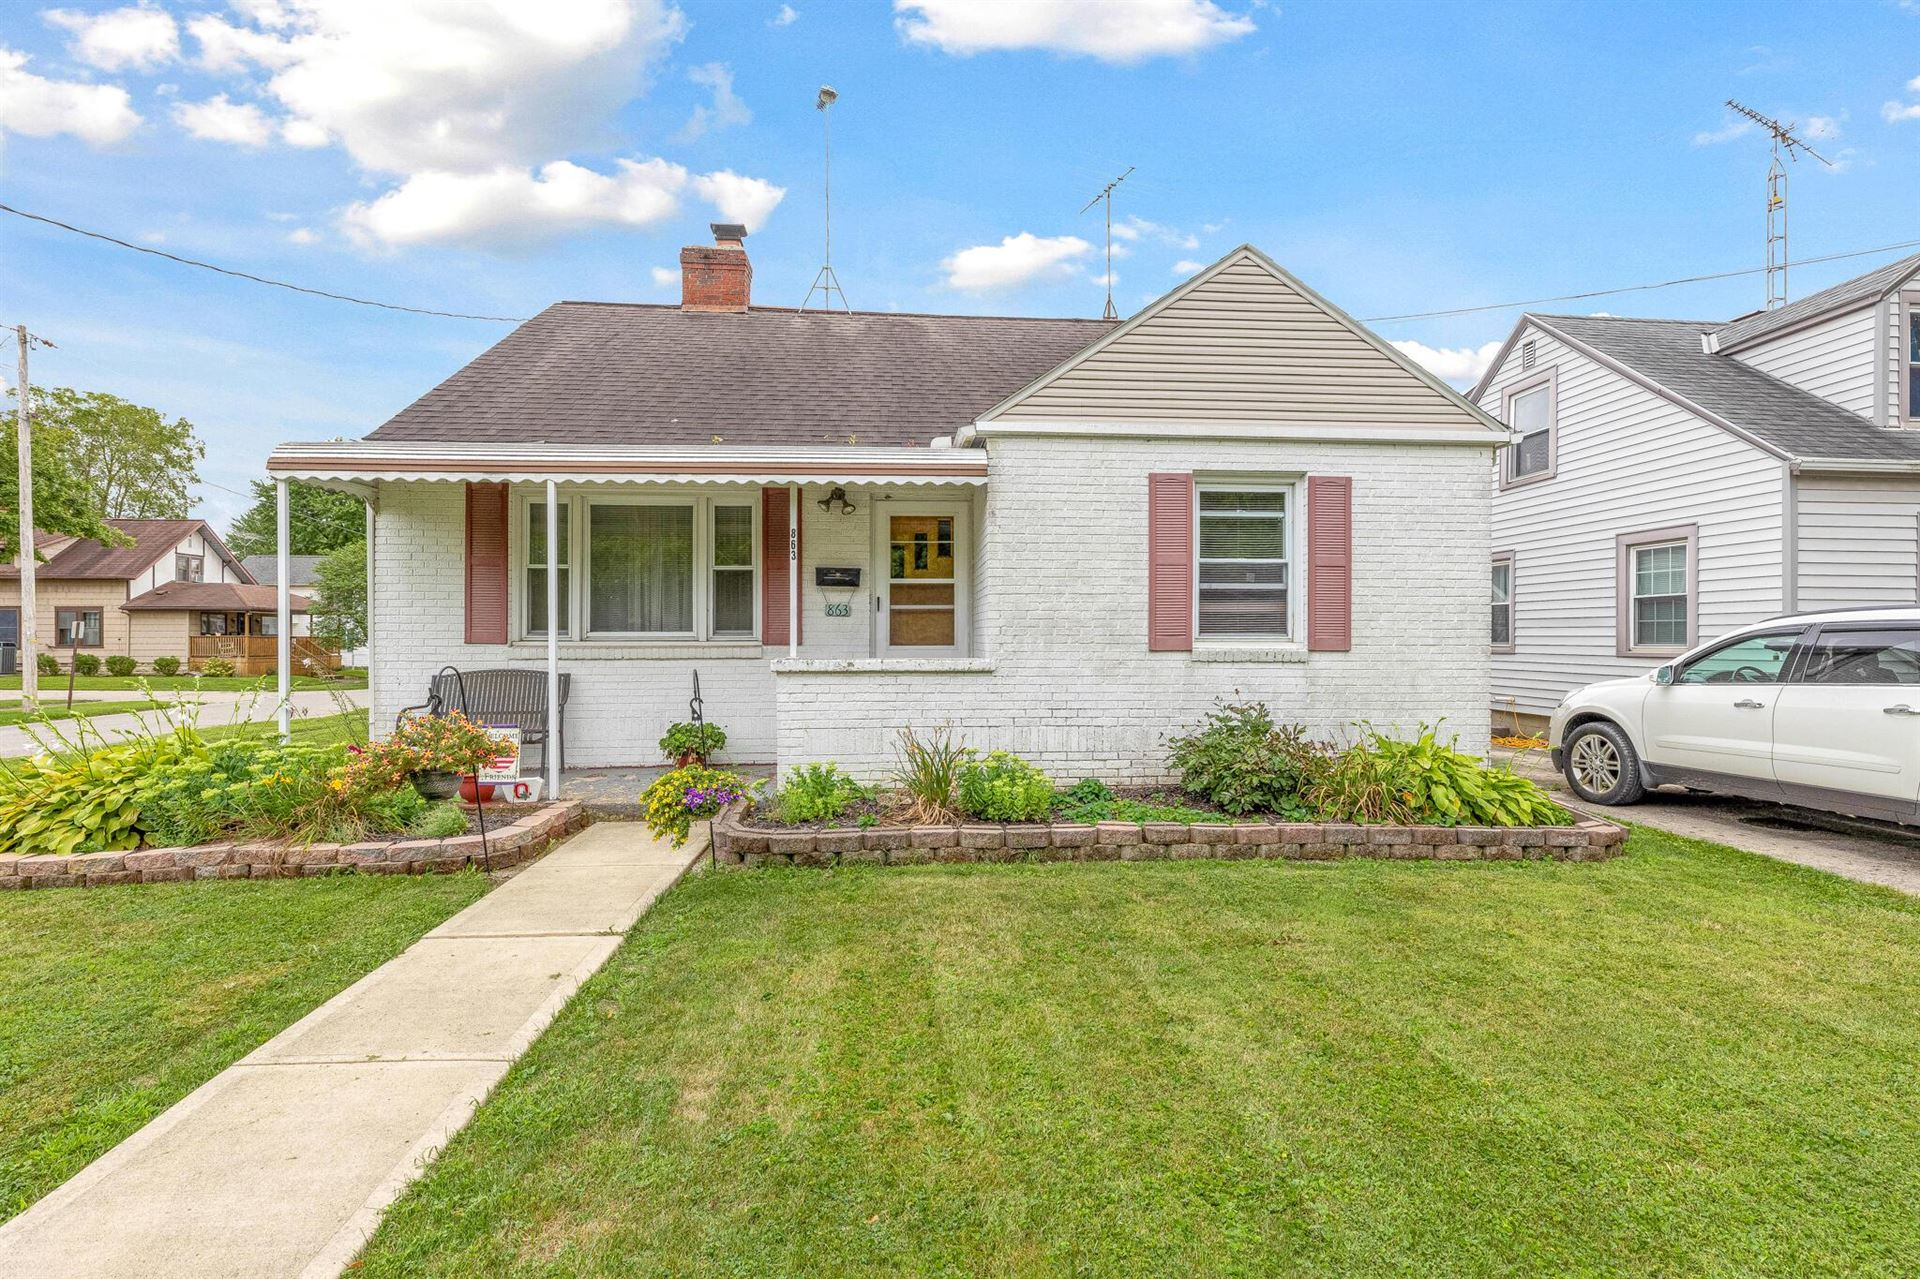 863 Indiana Avenue, Marion, OH 43302 - #: 221029981